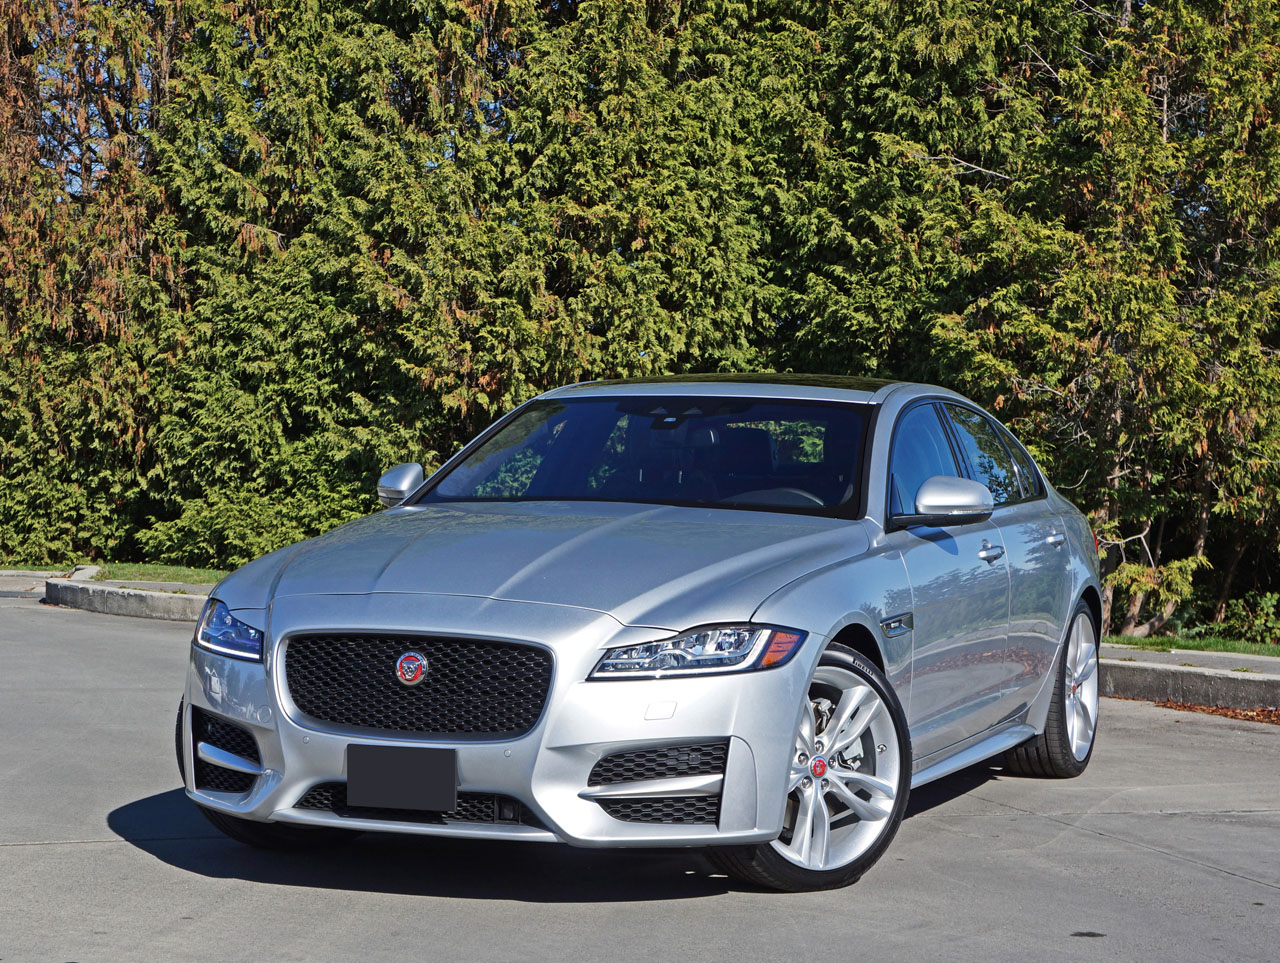 2017 jaguar xf r sport 35t awd road test review the car magazine. Black Bedroom Furniture Sets. Home Design Ideas